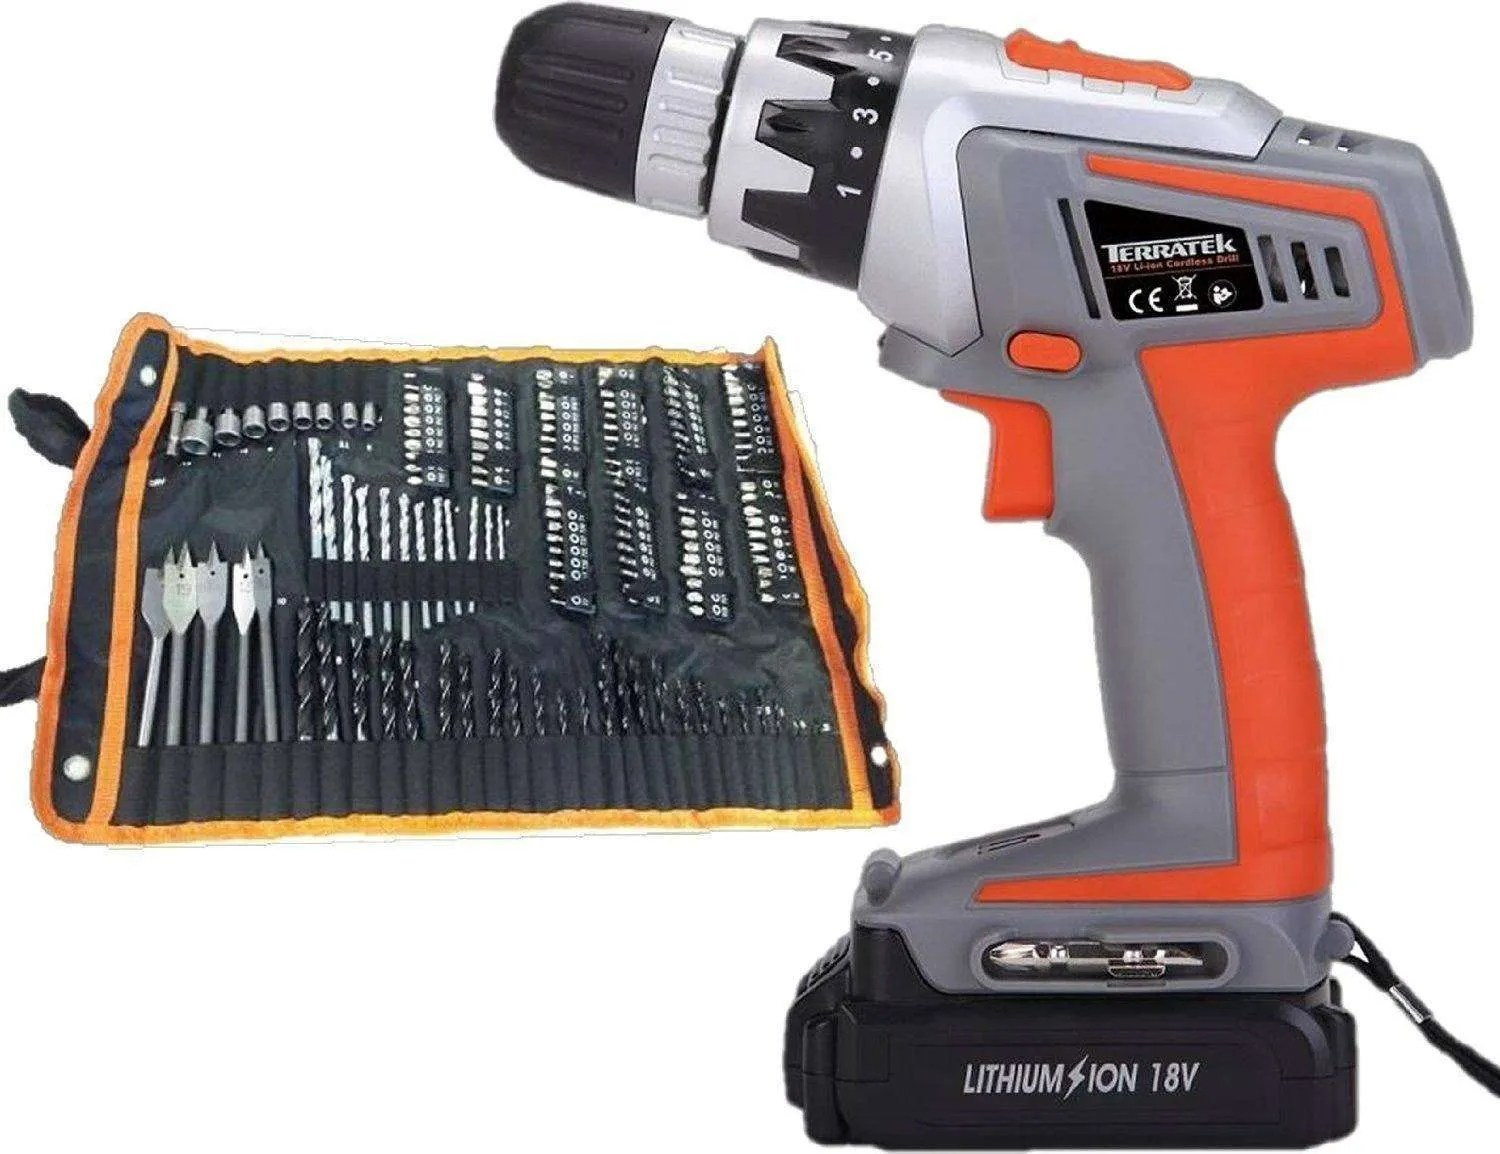 Terratek 18V Lithium Ion Li-ion Cordless Power DIY Combi Drill Driver with 150pcs Accessory Kit